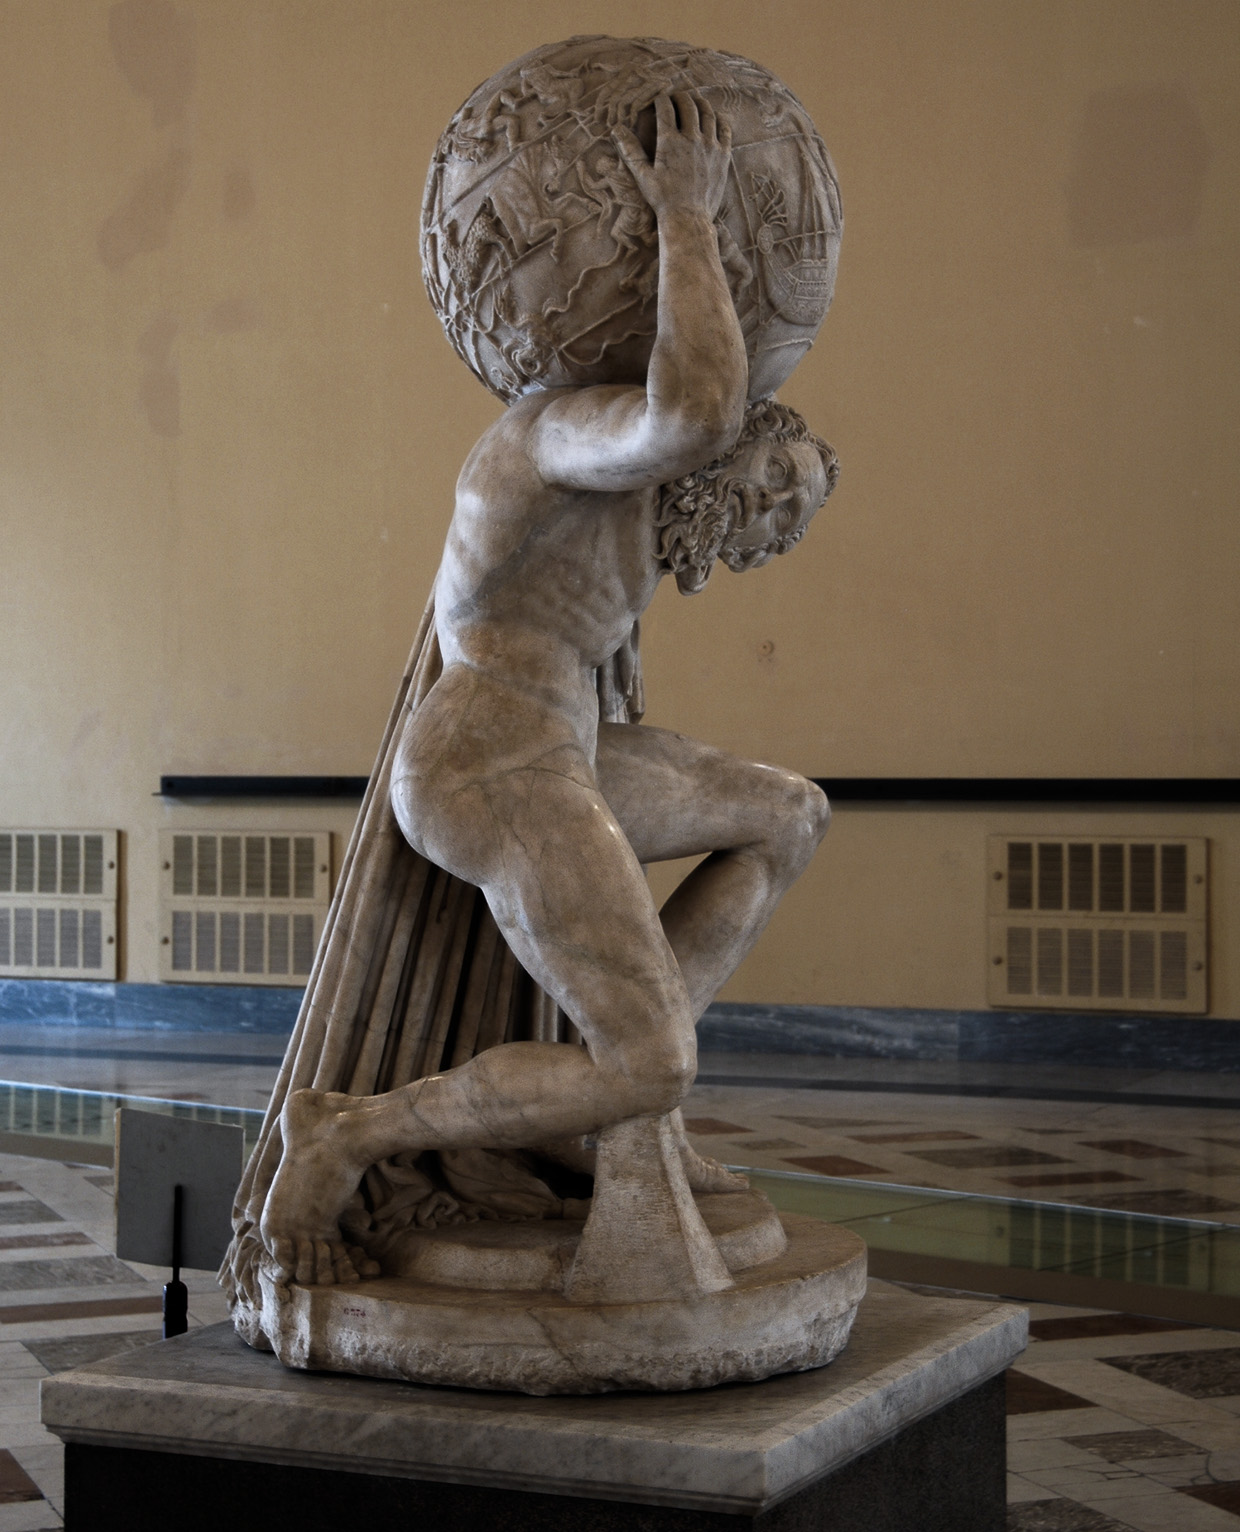 Statue of Atlas holding the celestial sphere (Farnese Atlas). Marble. Roman copy of a Greek sculpture of the 2nd cent. BCE. Inv. No. 6374. Naples, National Archaeological Museum